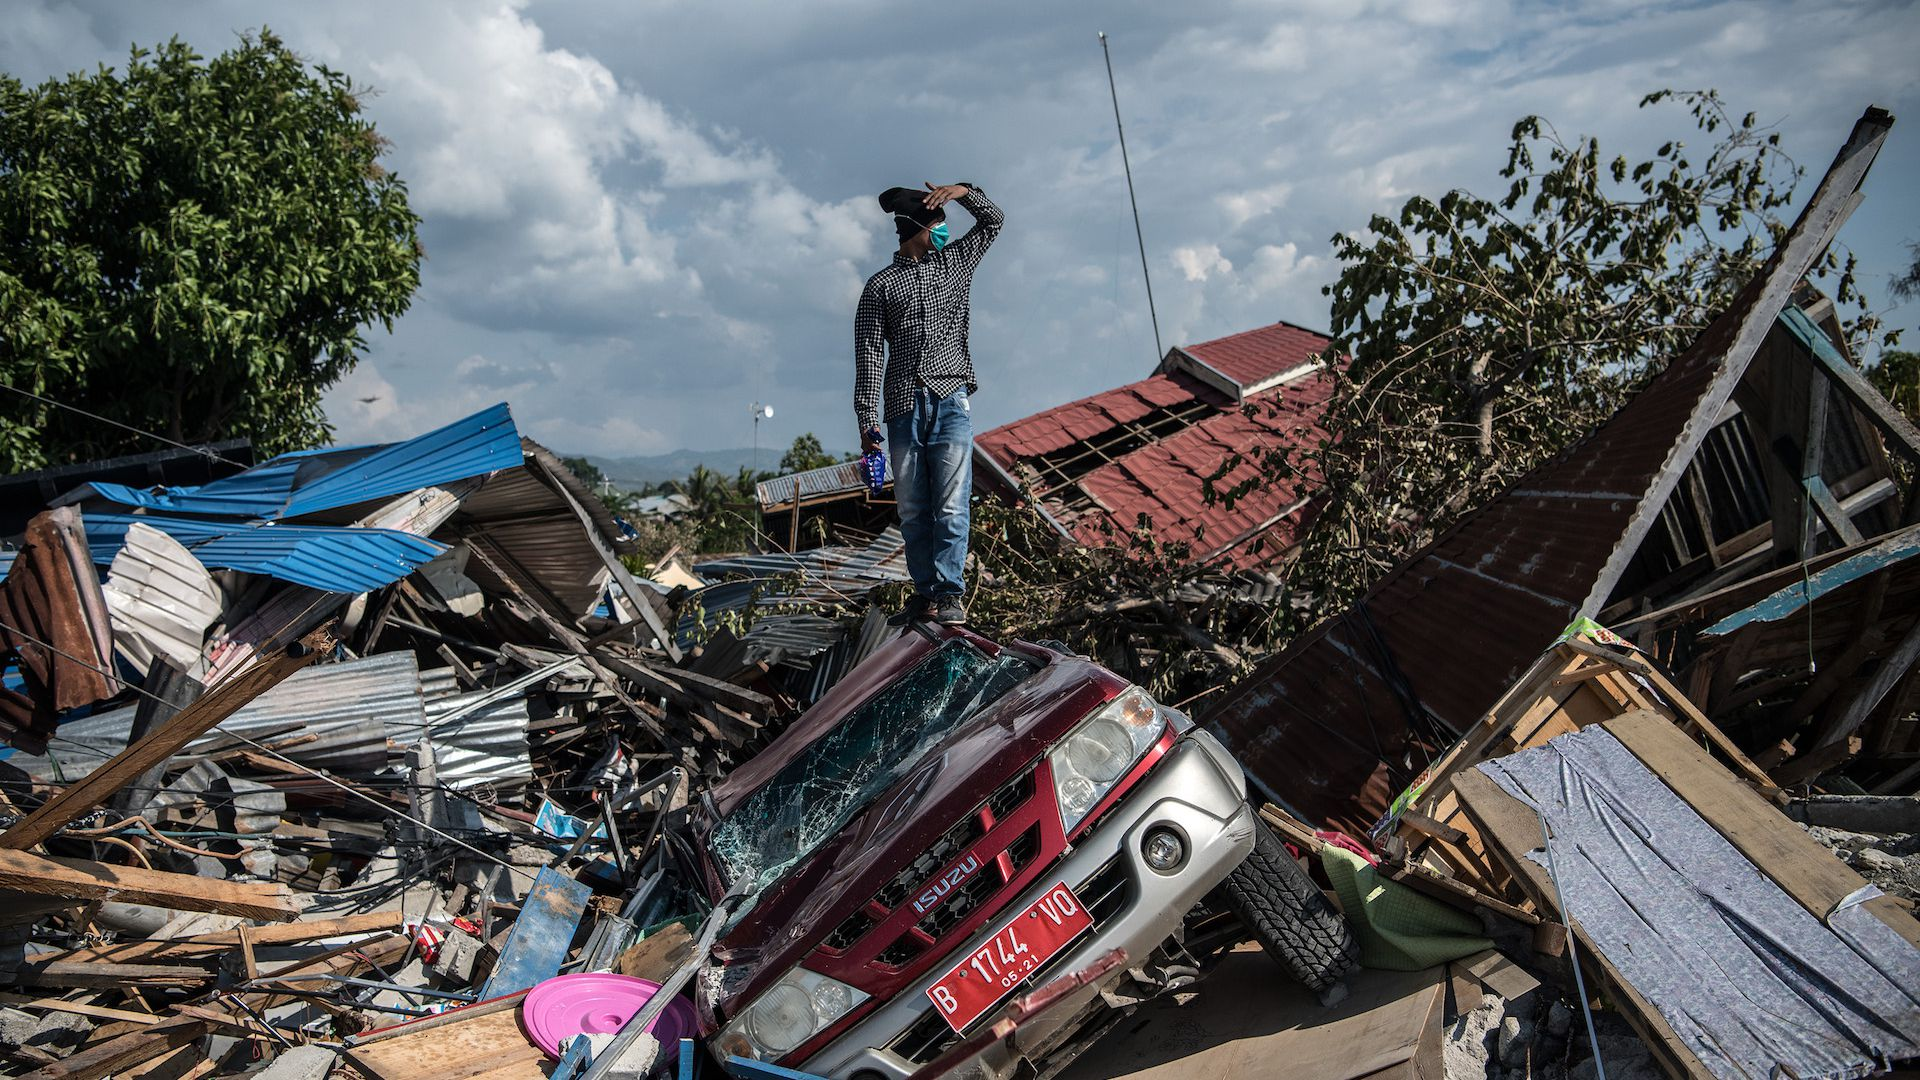 A man stands on a destroyed car as he views the rubble and debris of destroyed buildings following an earthquake in Palu, Indonesia.